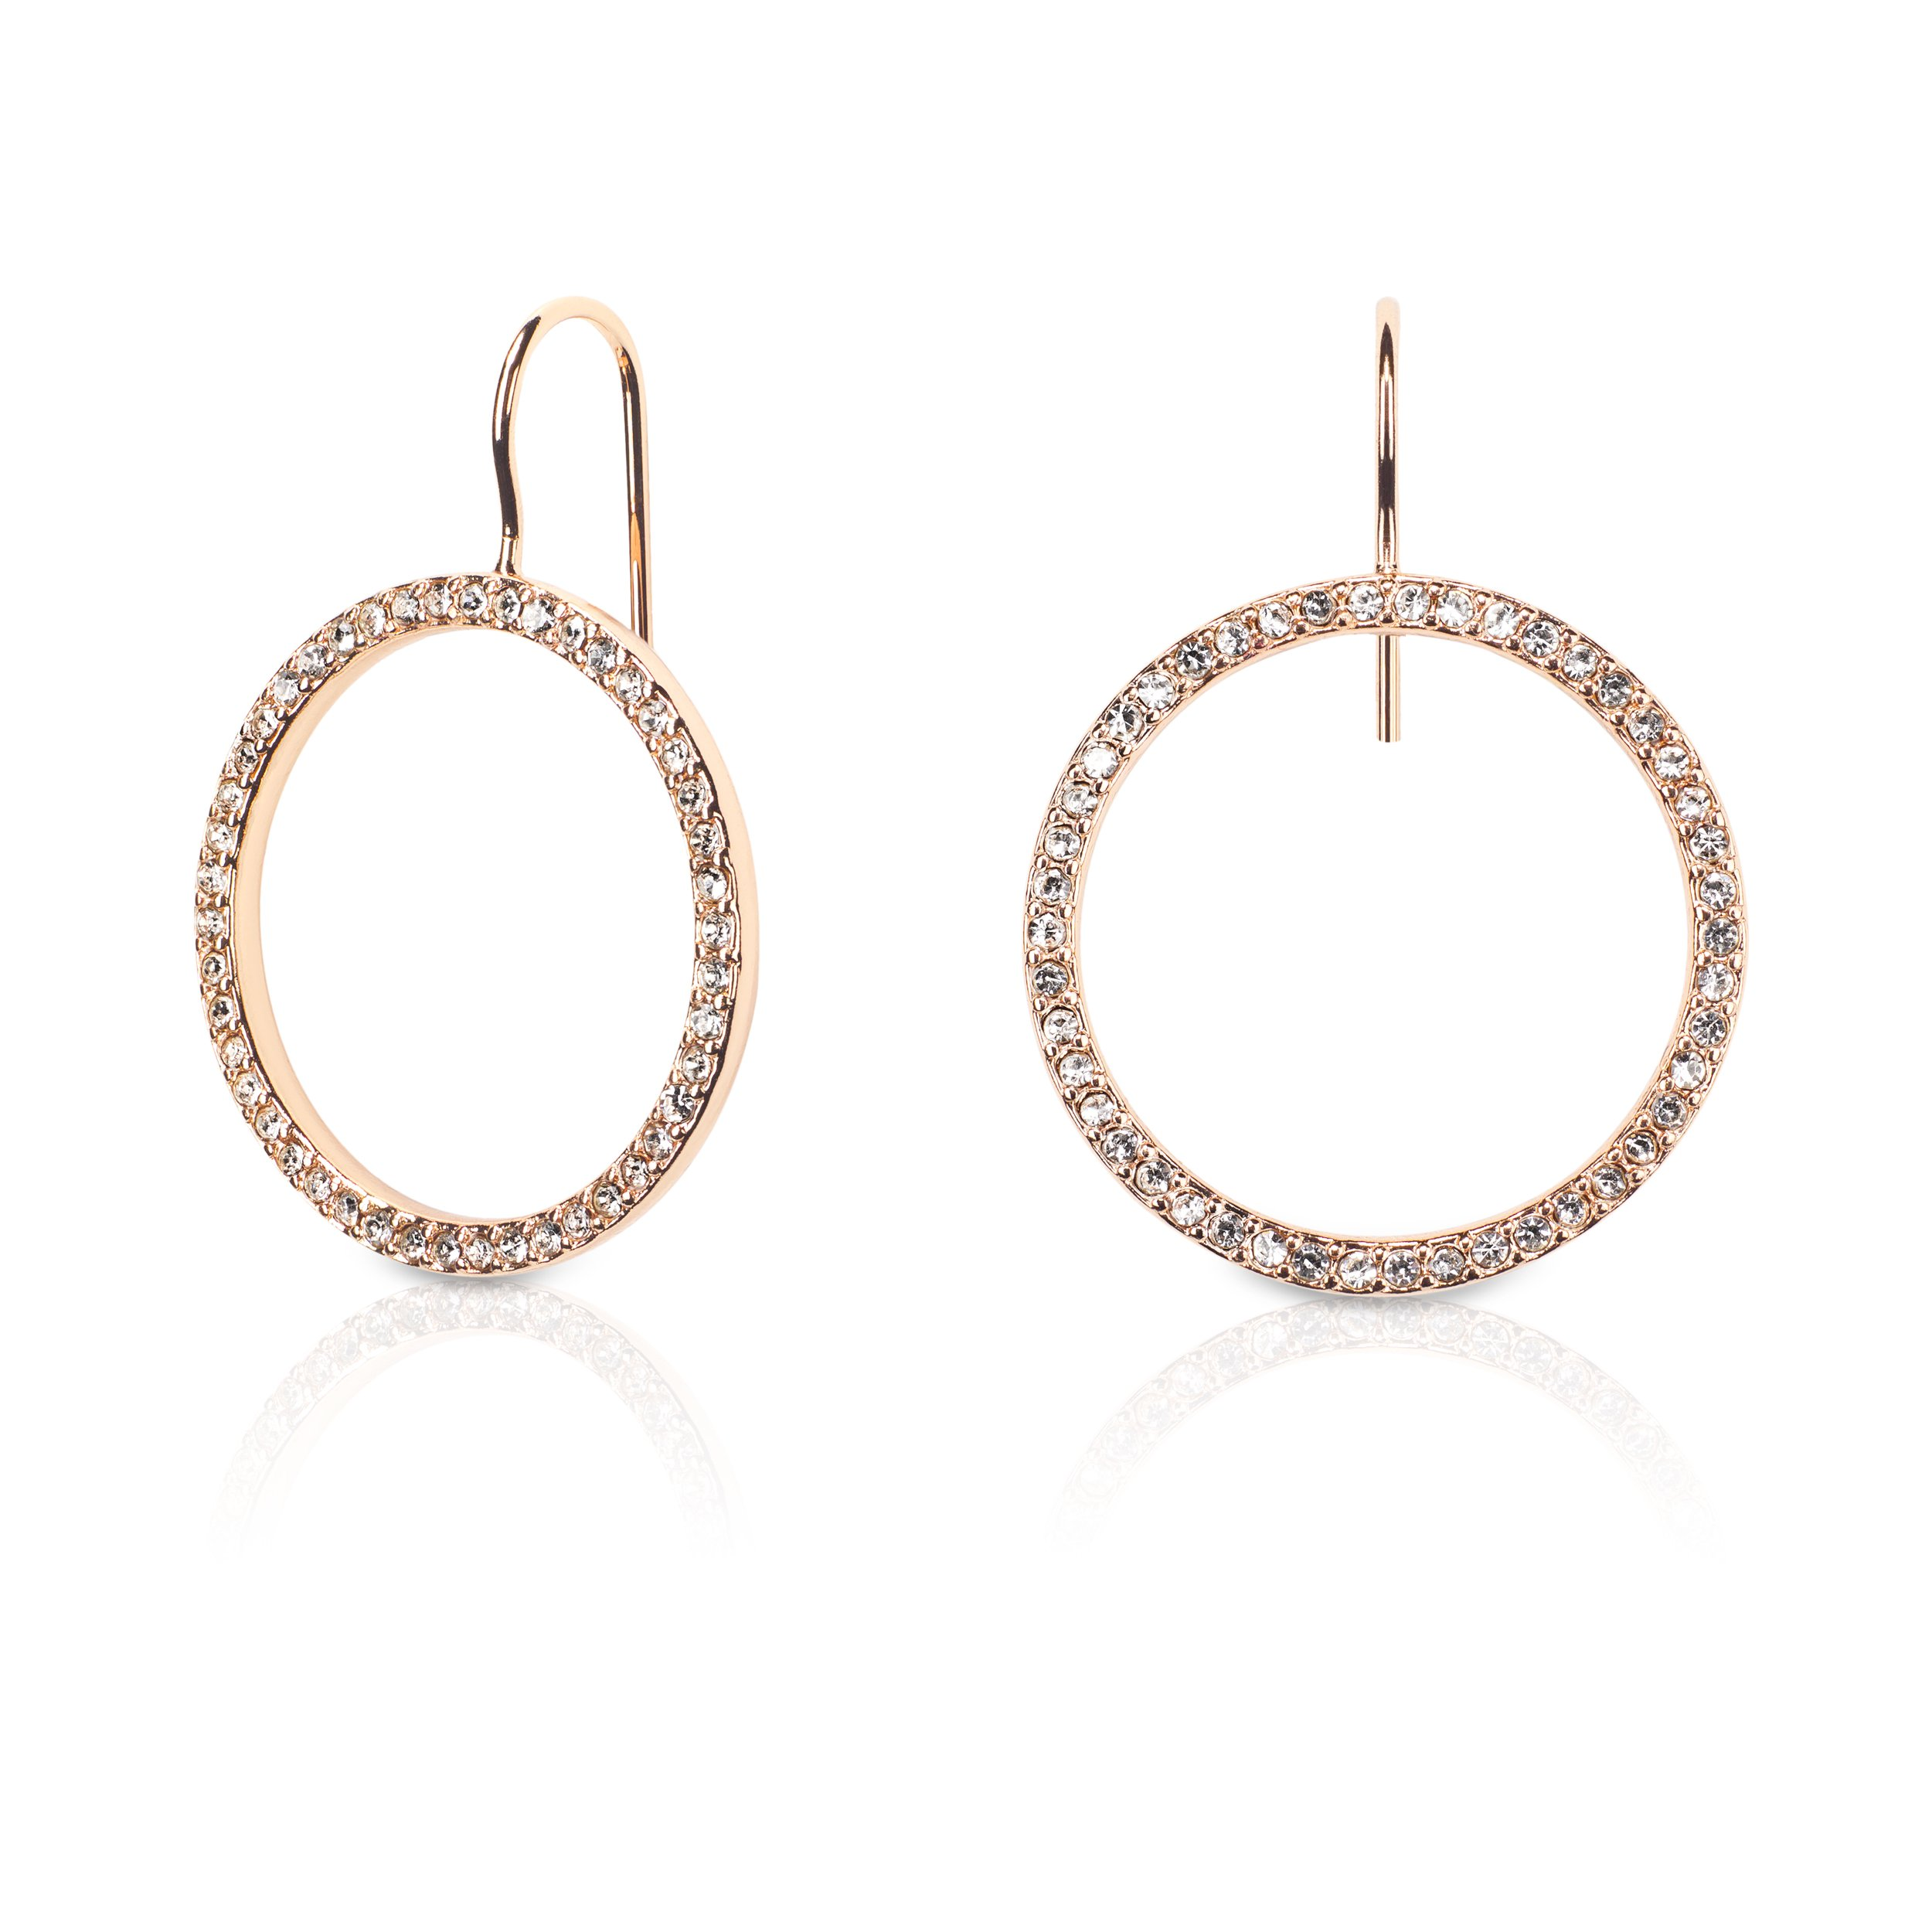 Kate Spade New York Gold Plated Hoop Earrings With Clear Studs